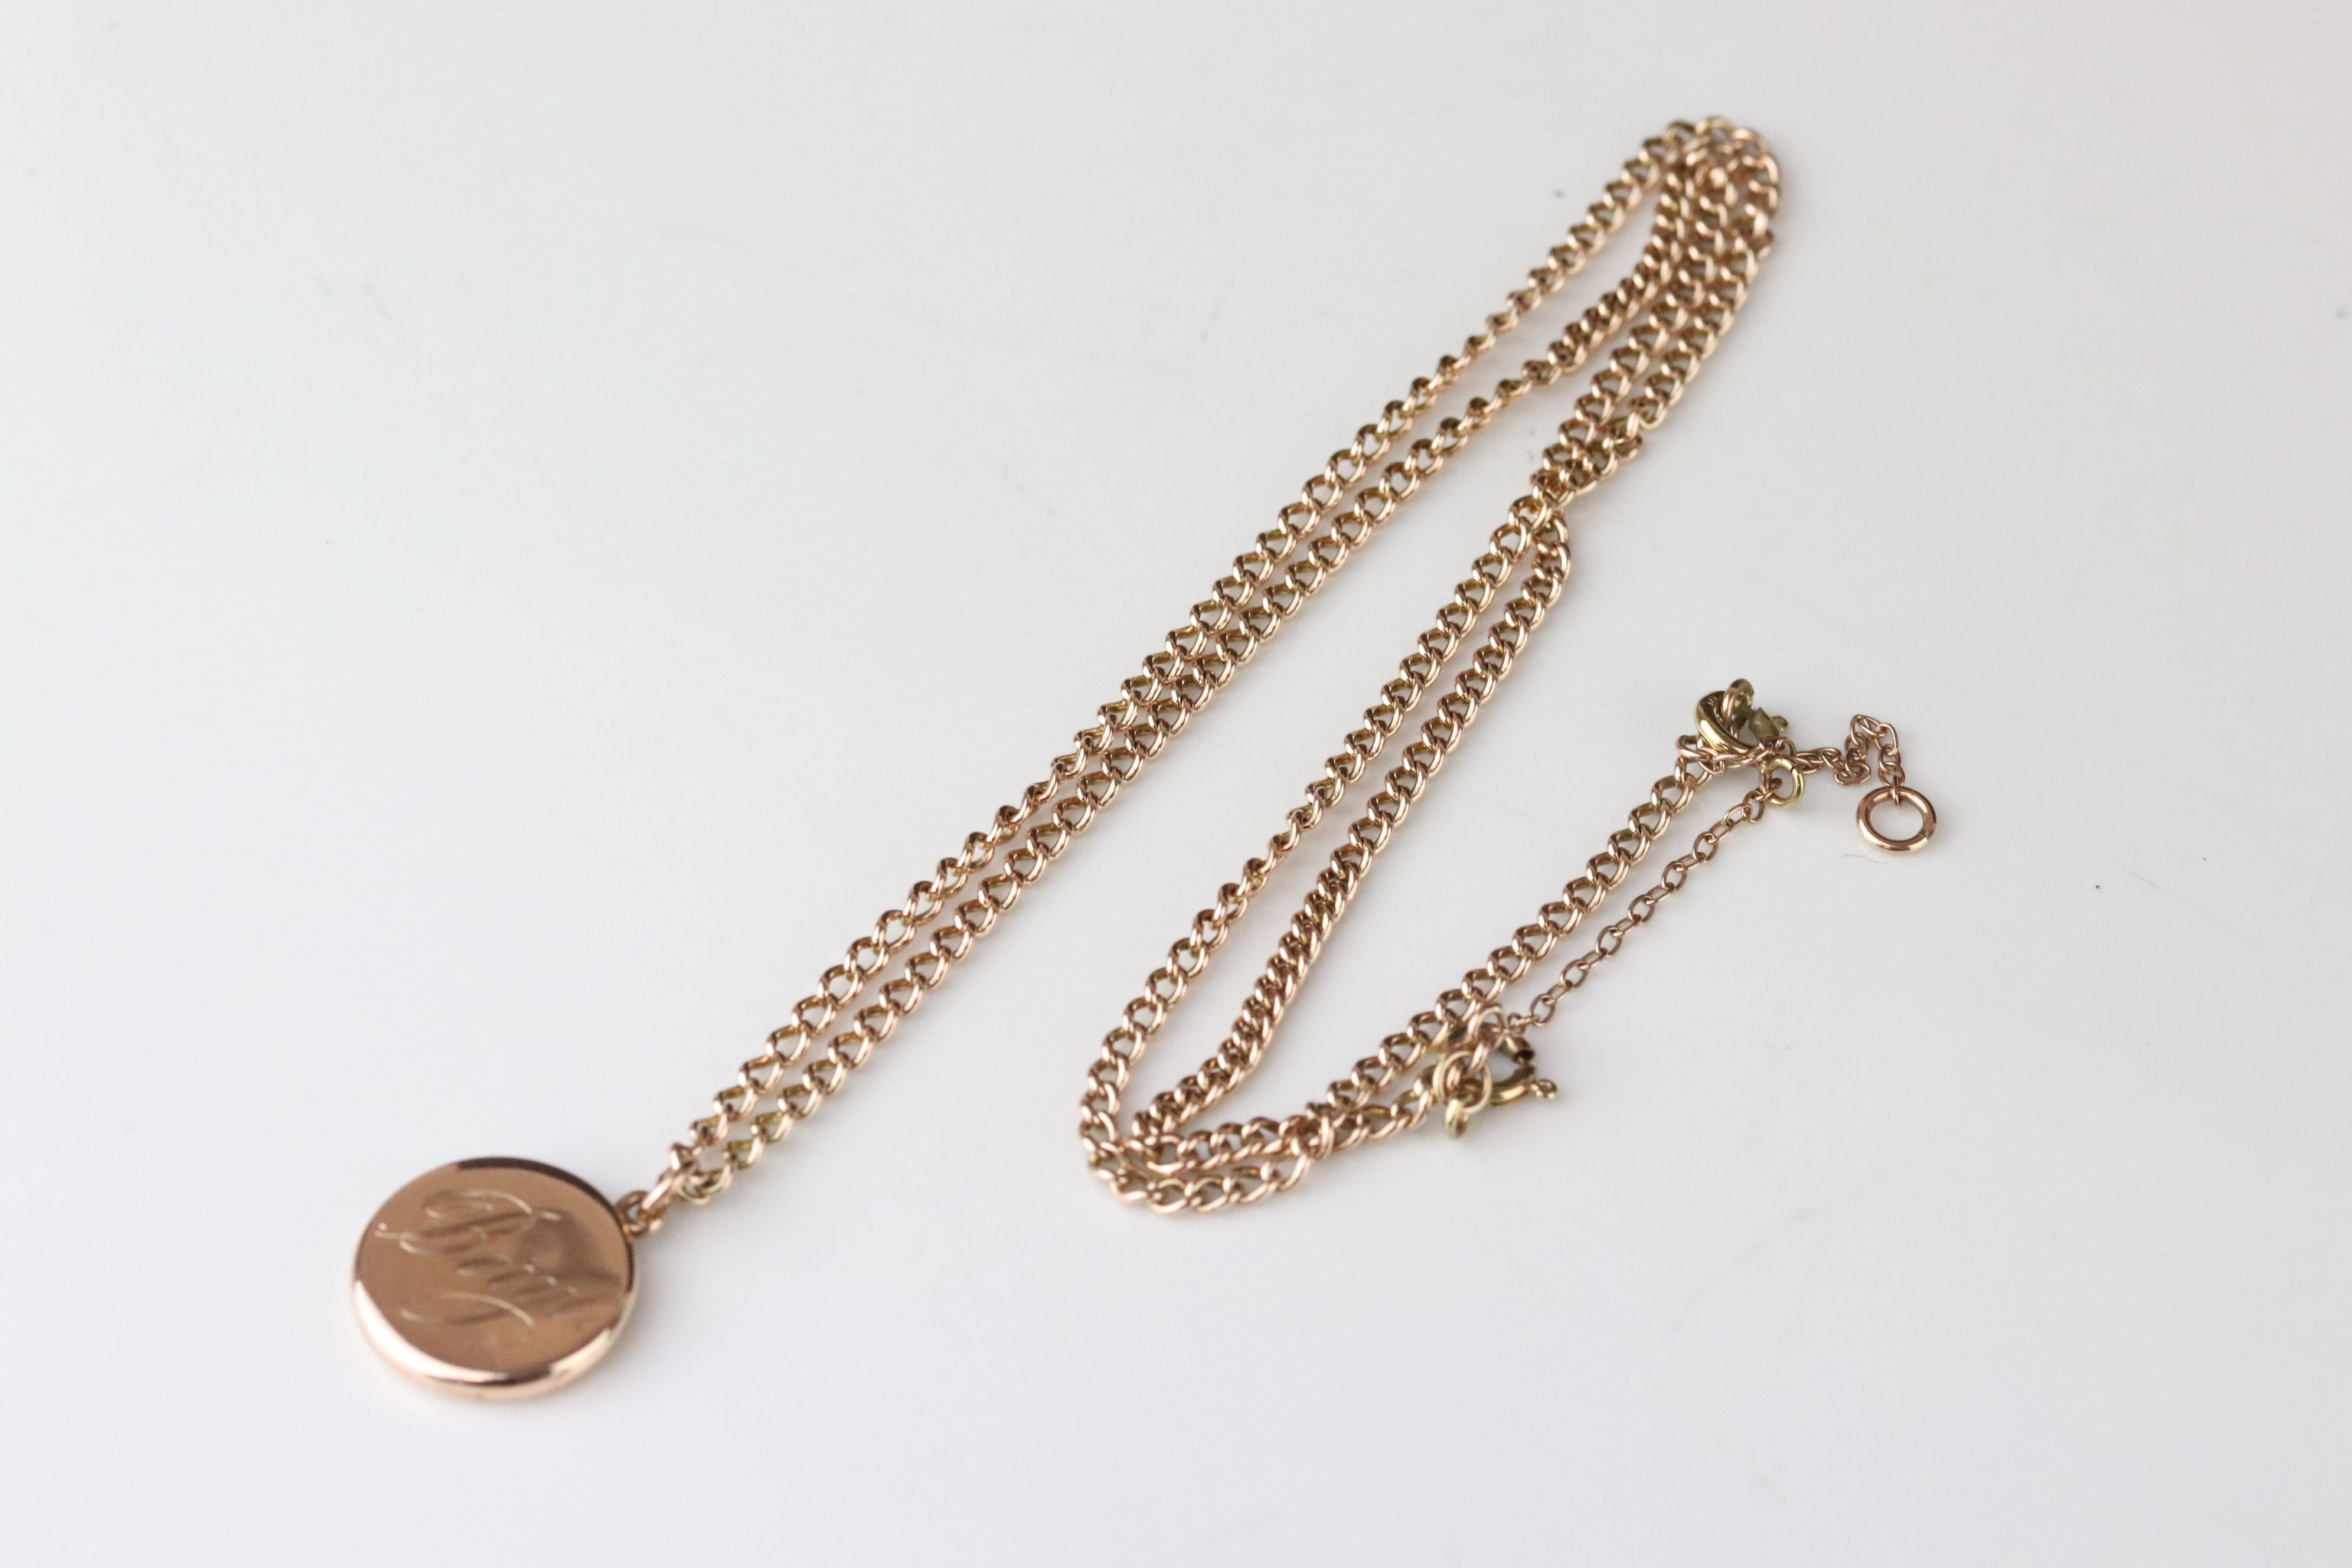 10ct yellow gold locket pendant engraved Beryl, containing hair to glazed compartment, on 9ct rose